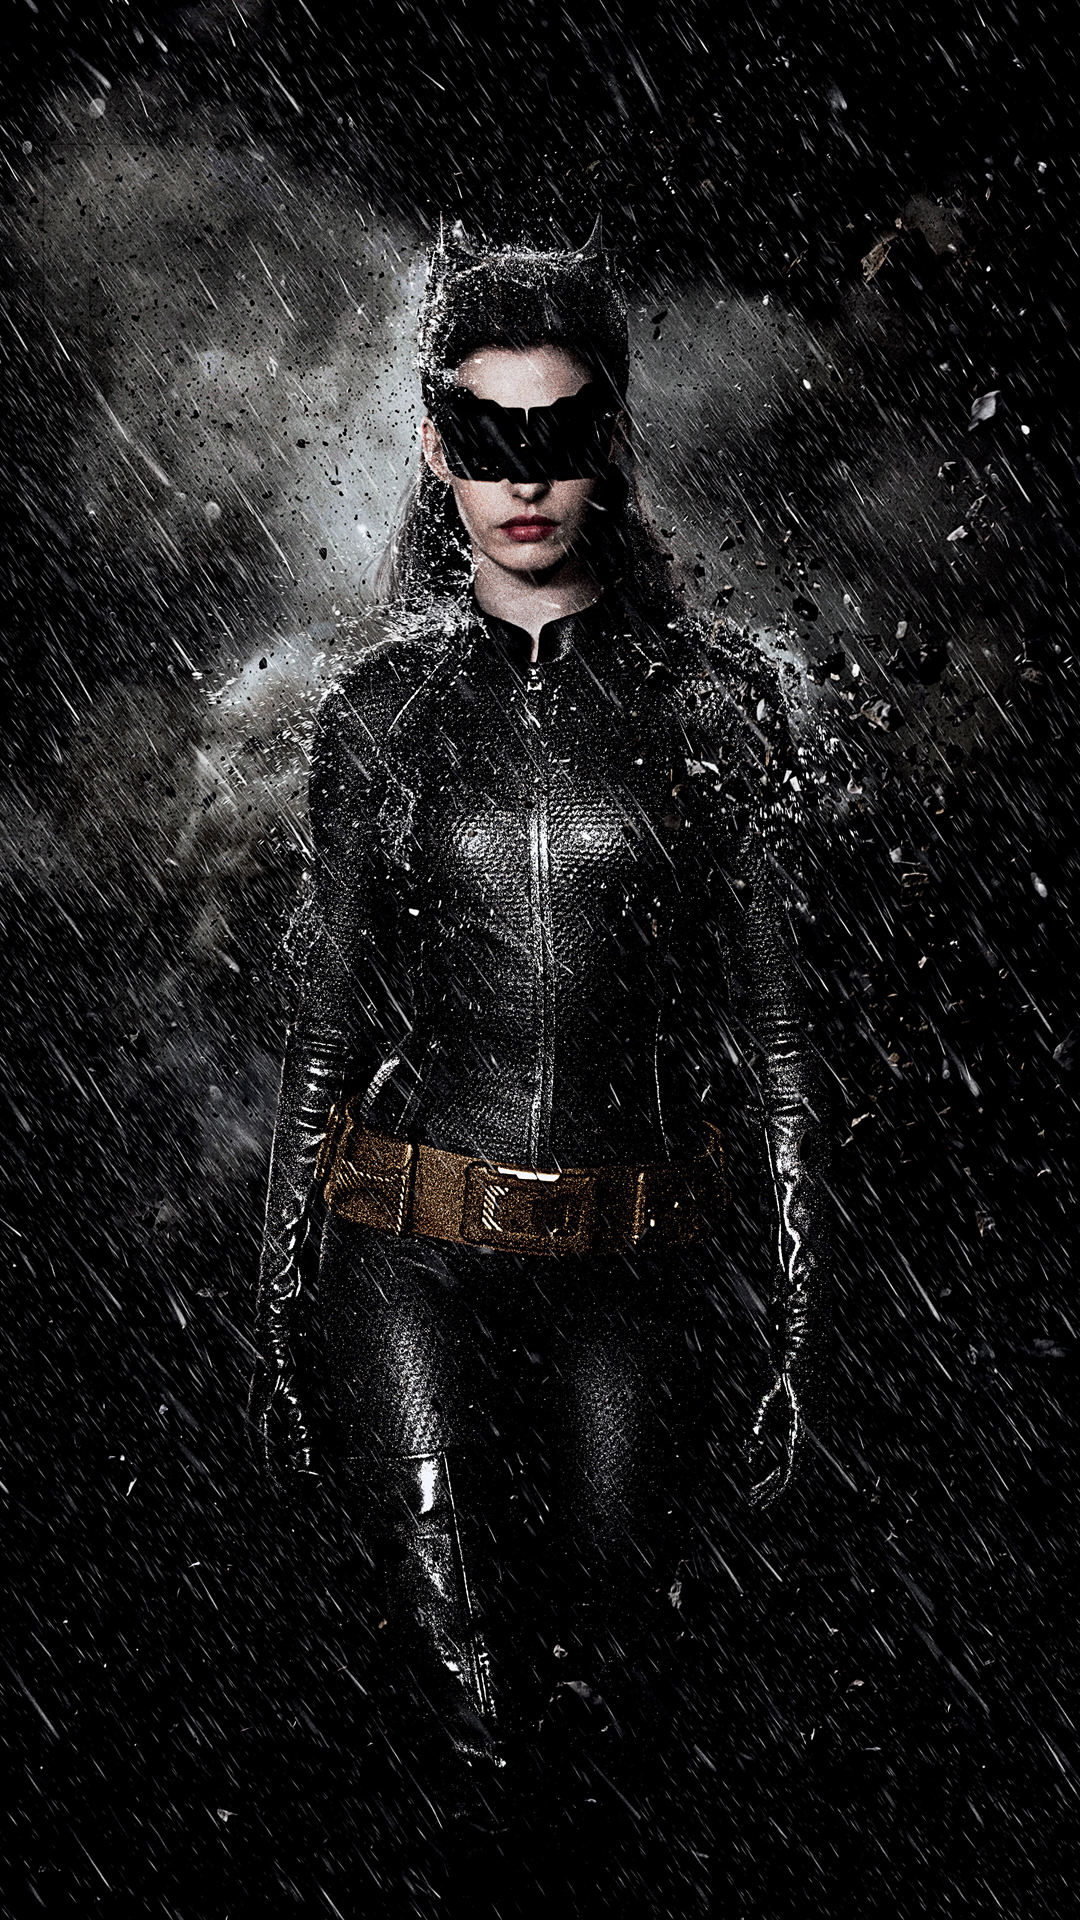 Catwoman htc one wallpaper